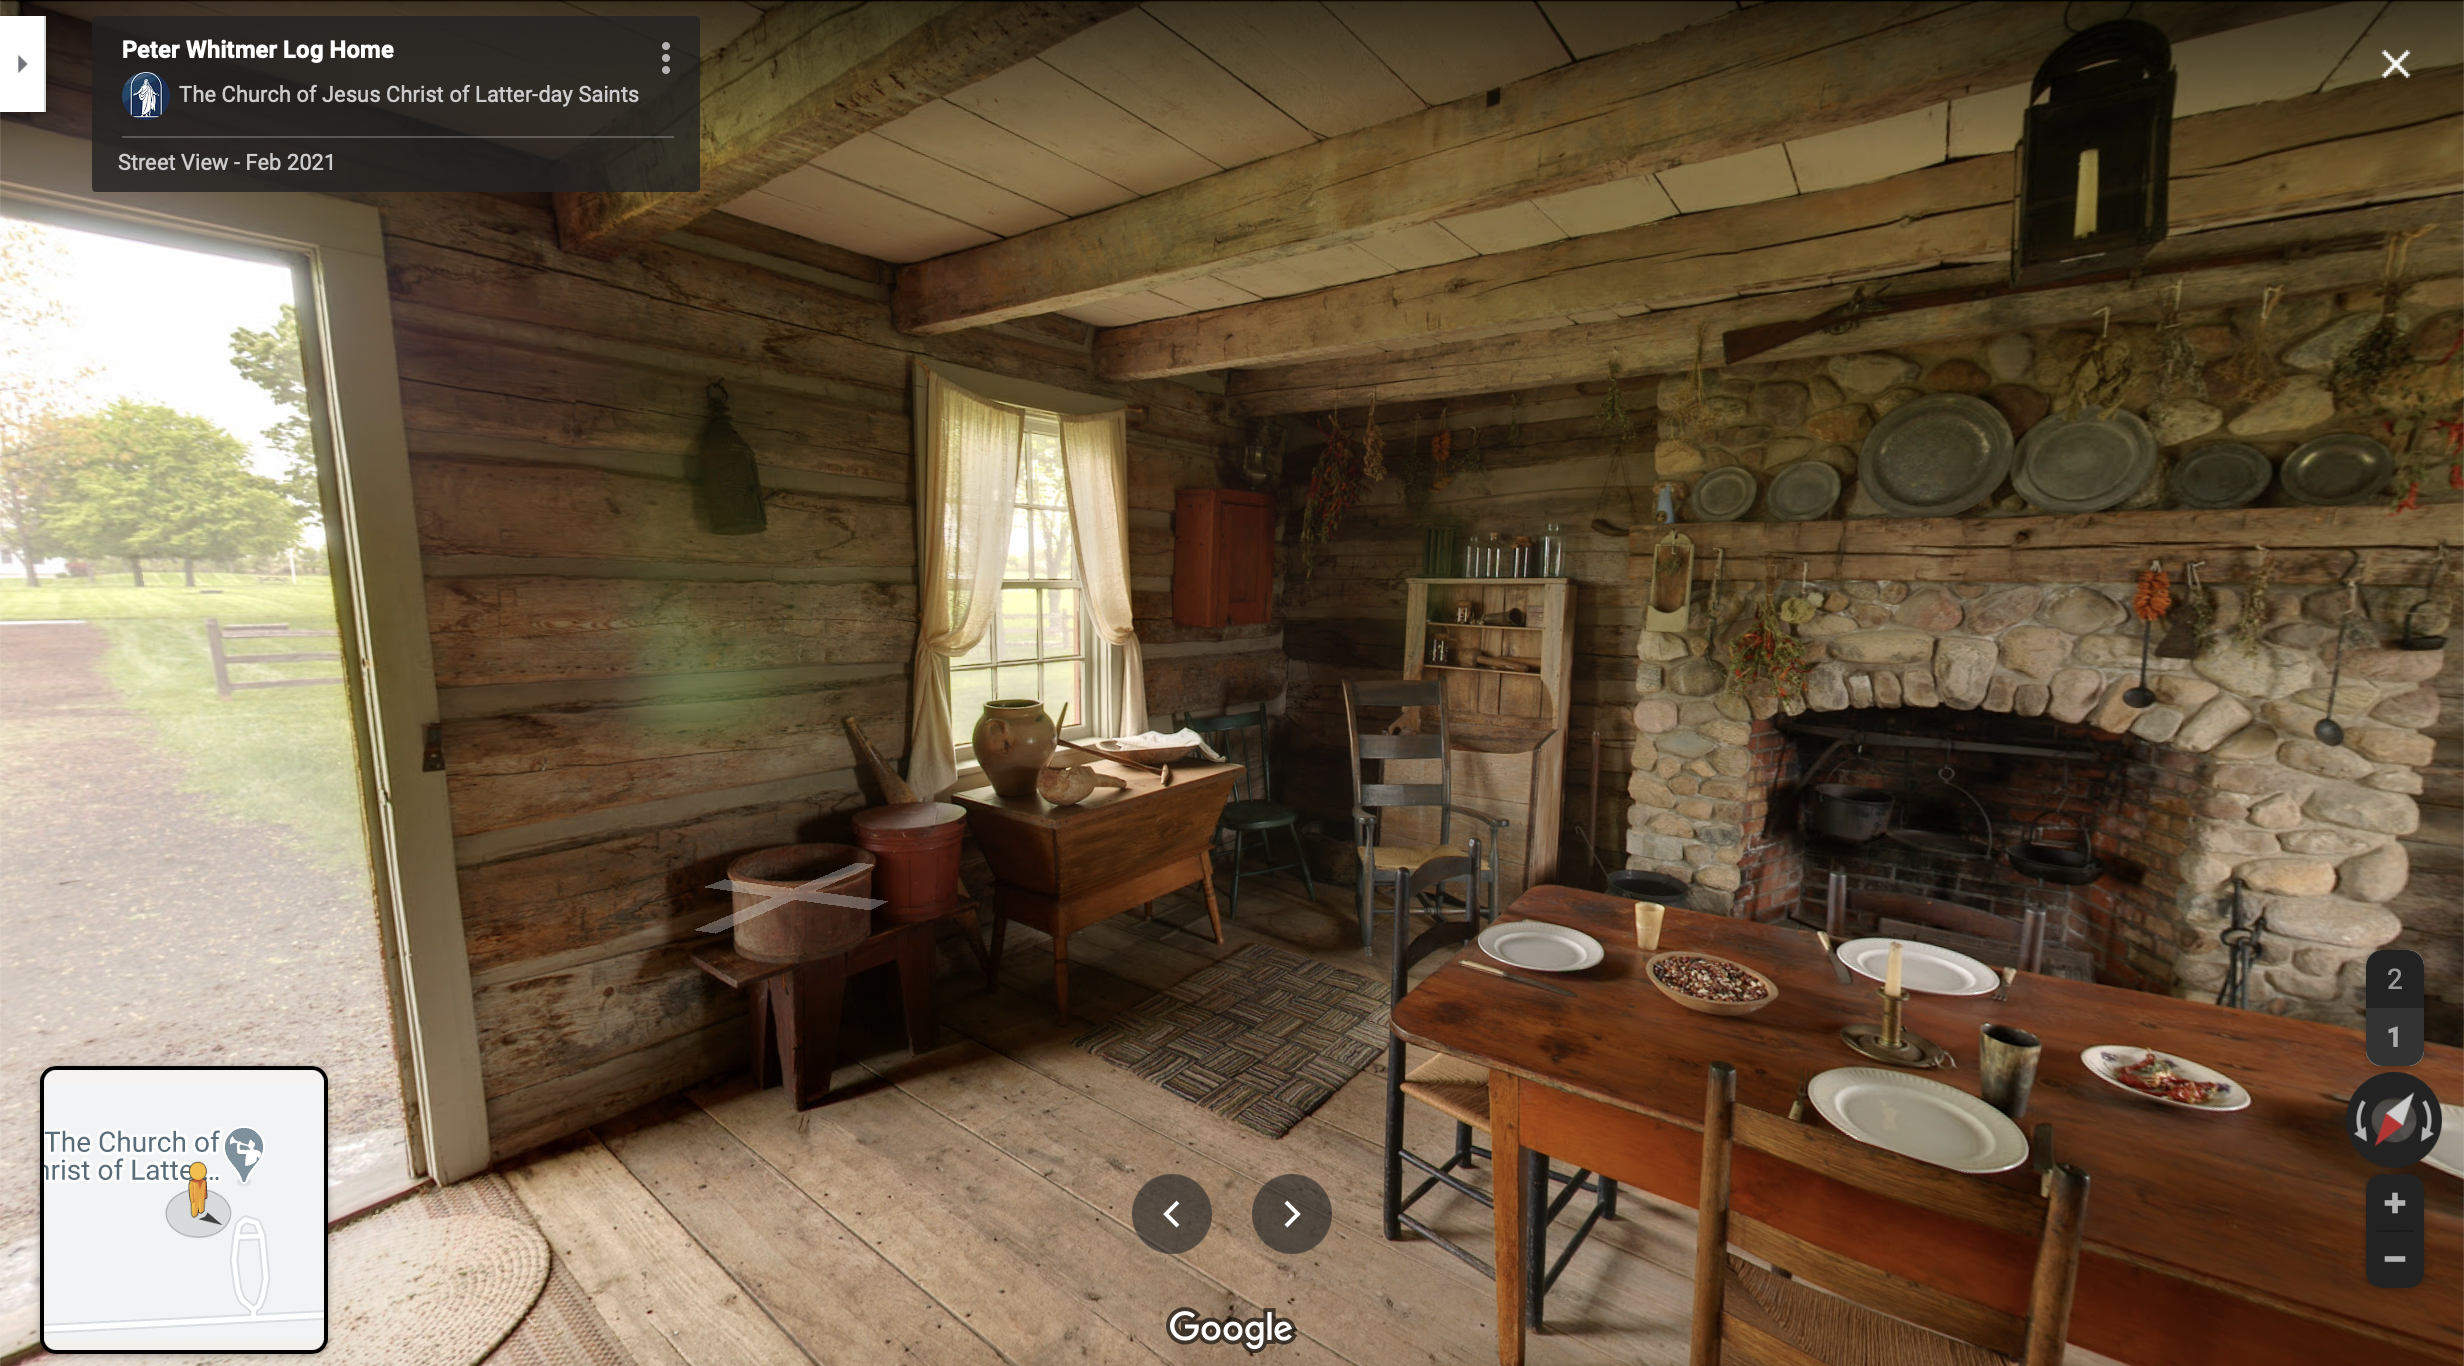 Screenshot of a 360 image of the Whitmer Home from Google Maps